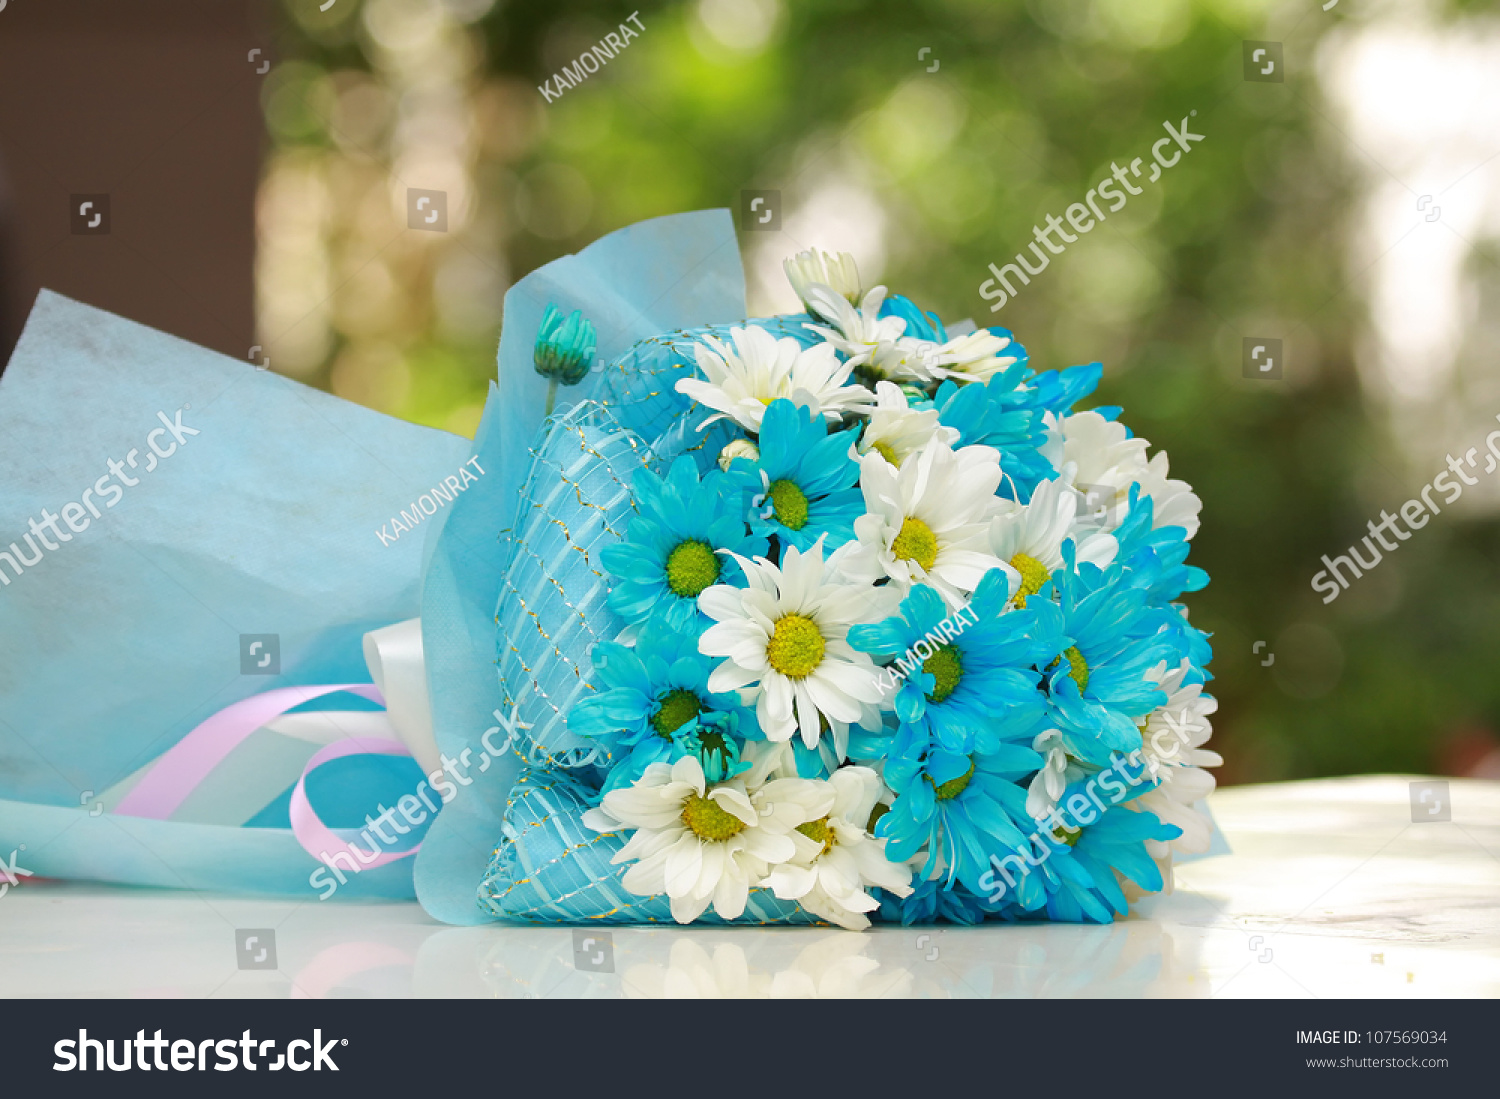 Beautiful Bouquet Of Bright Blue And White Flowers On Table Green Background